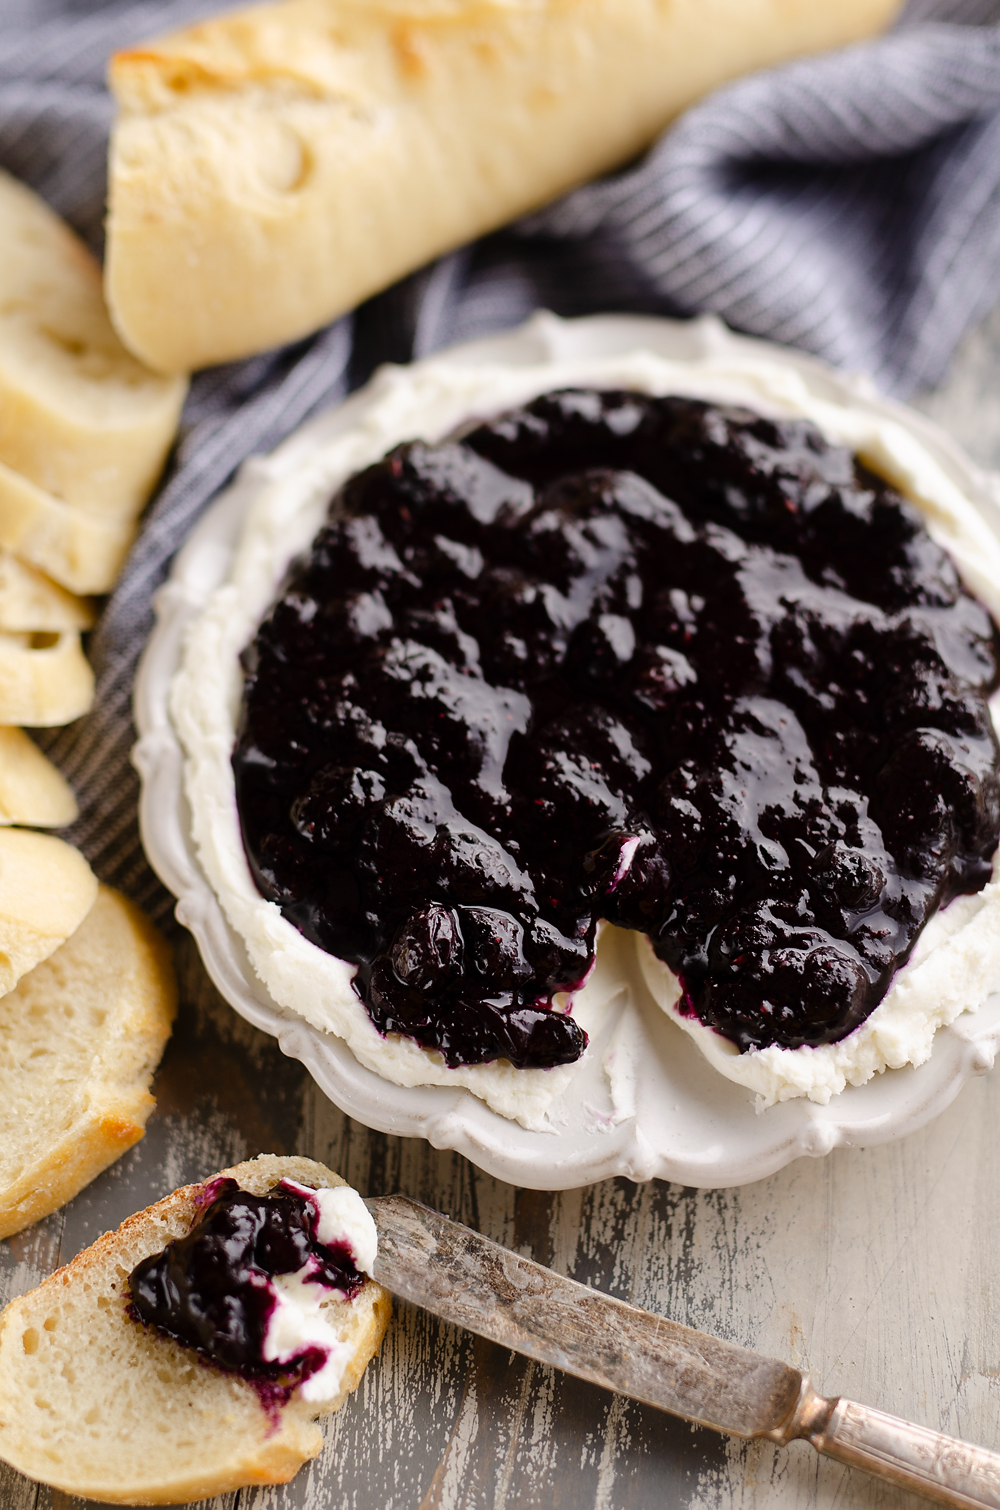 Blueberry Balsamic Goat's Cheese Appetizer